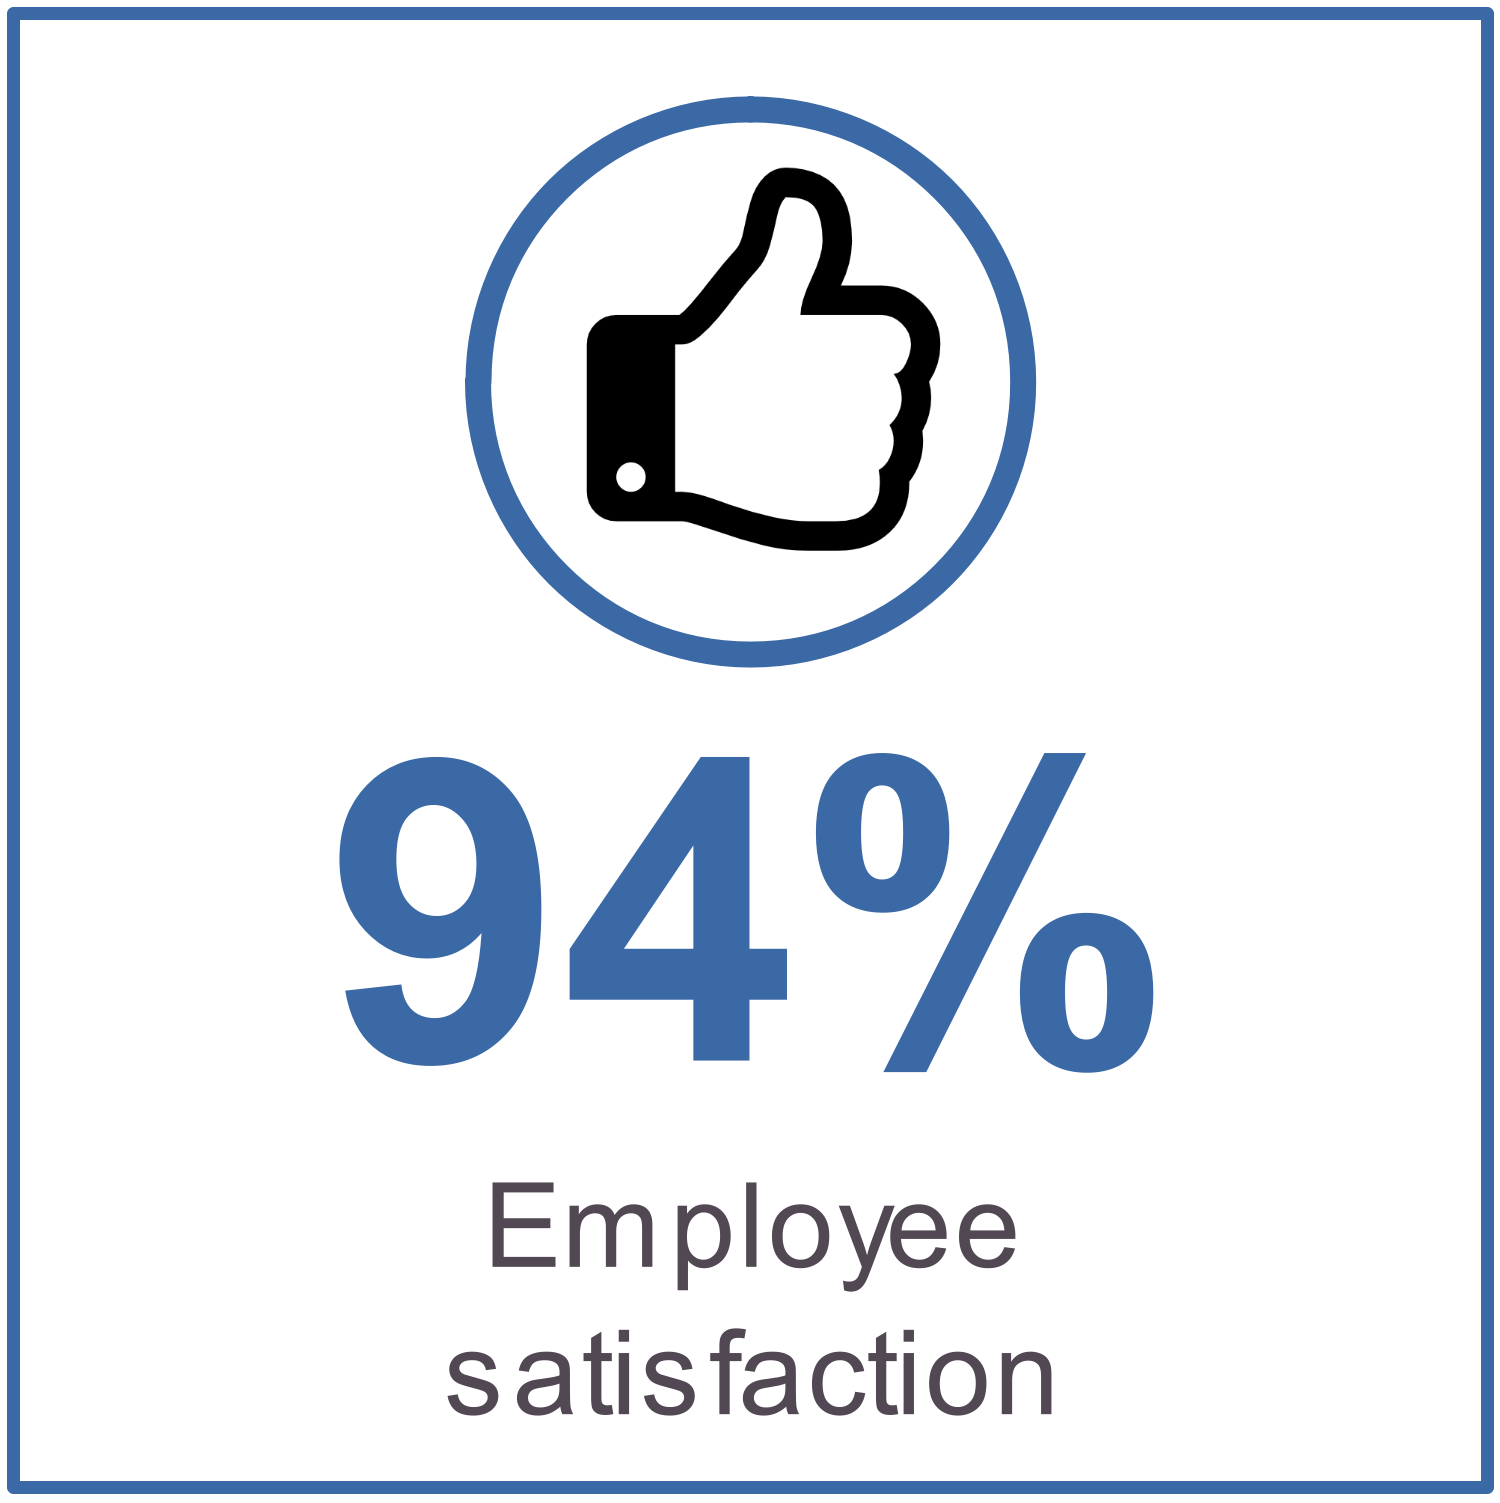 94% employee satisfaction